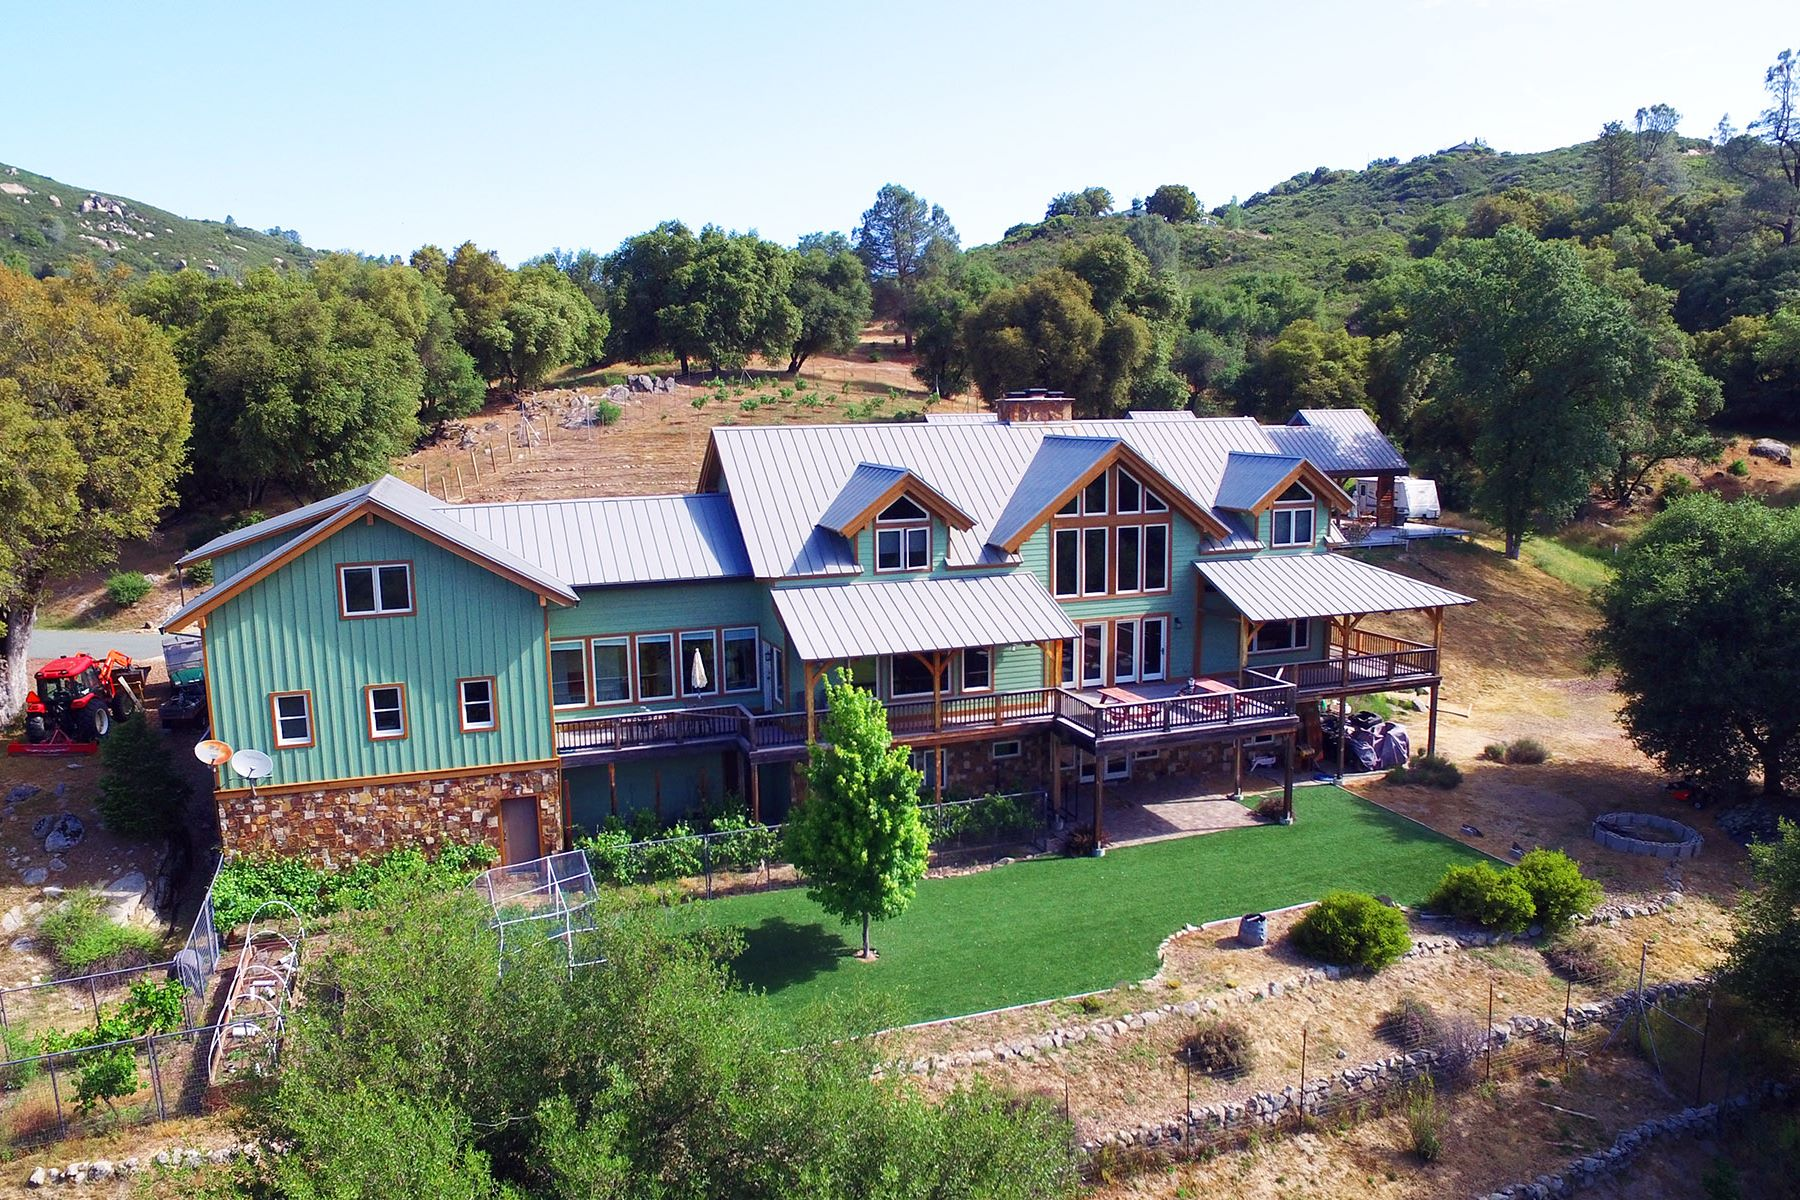 Single Family Home for Active at A River Runs Through It 3087 Mira Paradis Drive Somerset, California 95684 United States